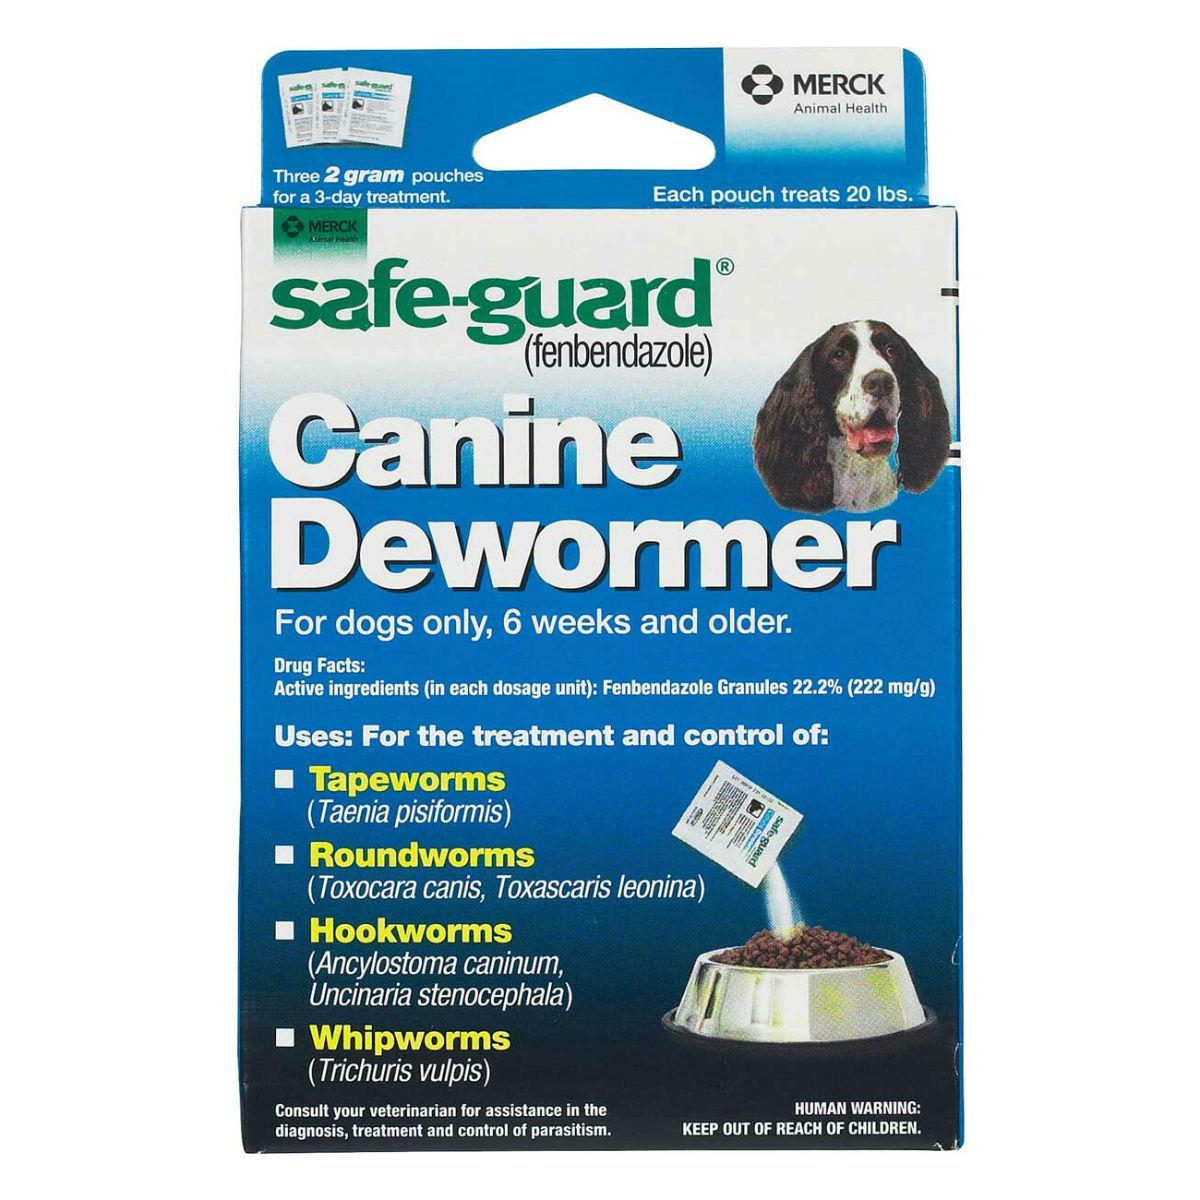 Merck Safeguard Canine Dewormer Dog Treatment